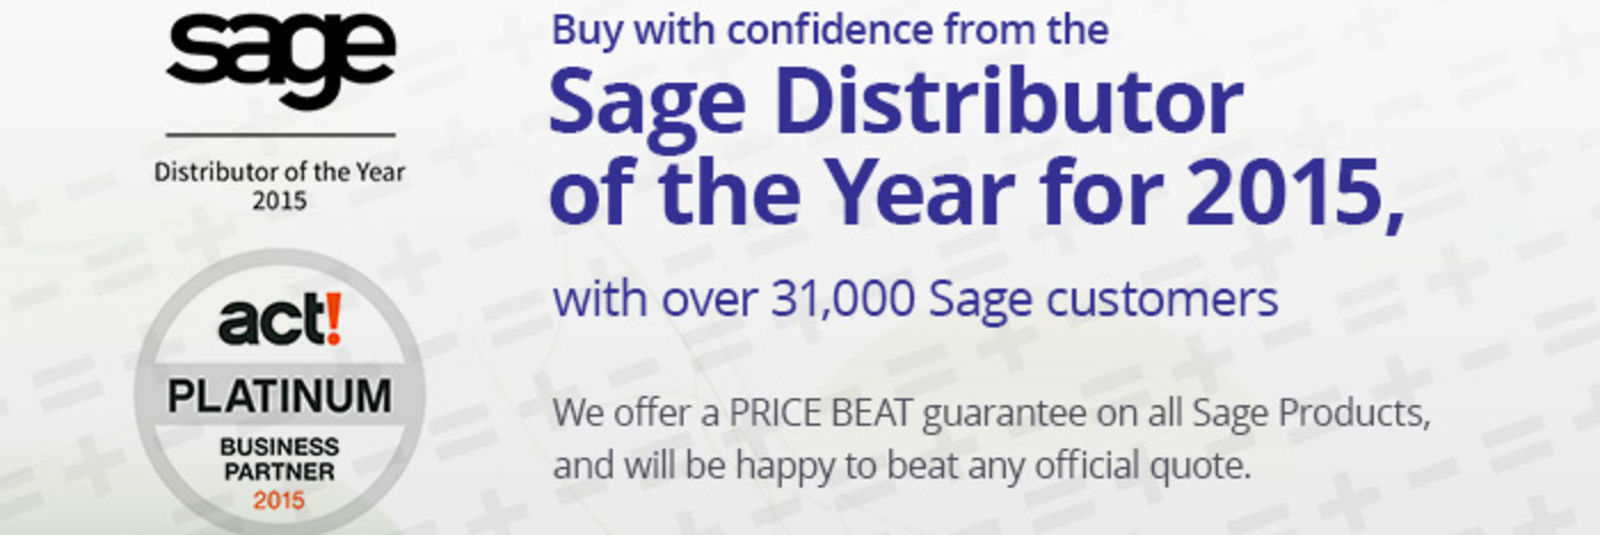 Sage Distributor of the Year for 2014